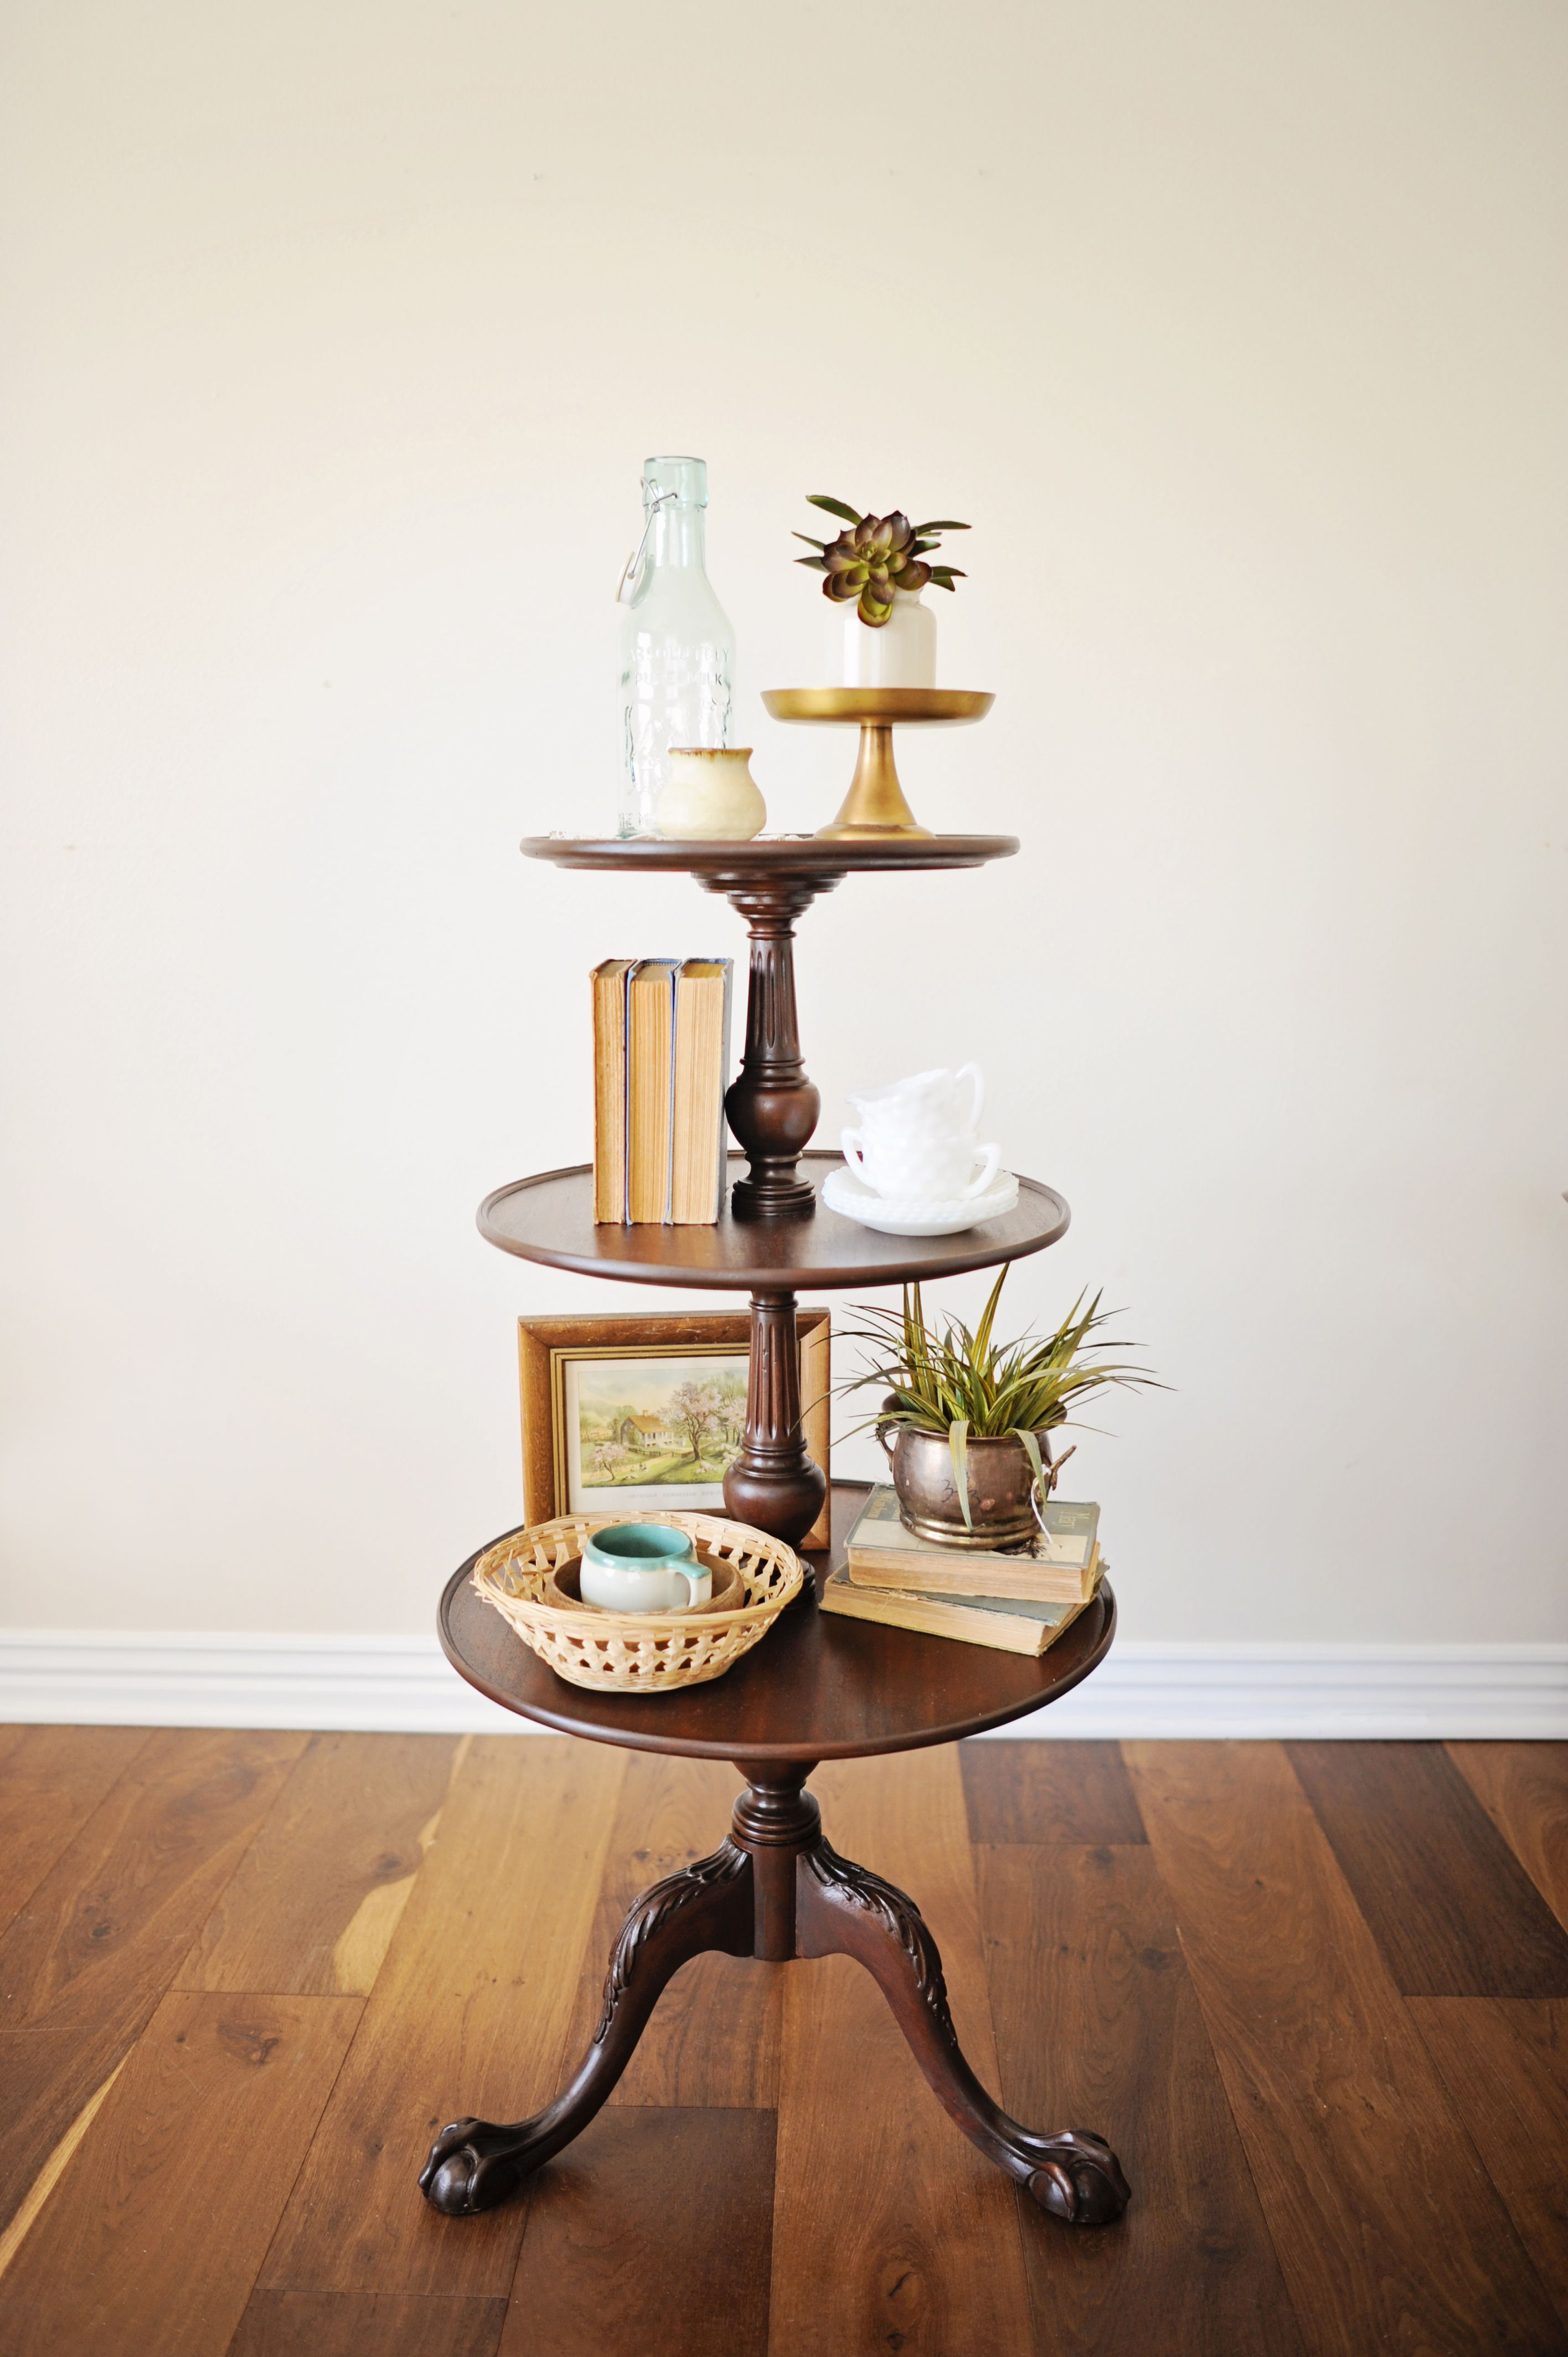 Gorgeous 3 Tiered Pie Crust Table Find Us At True Treasures In Bentonville Ar Living Room Table Tiered Pie Stand Home Decor